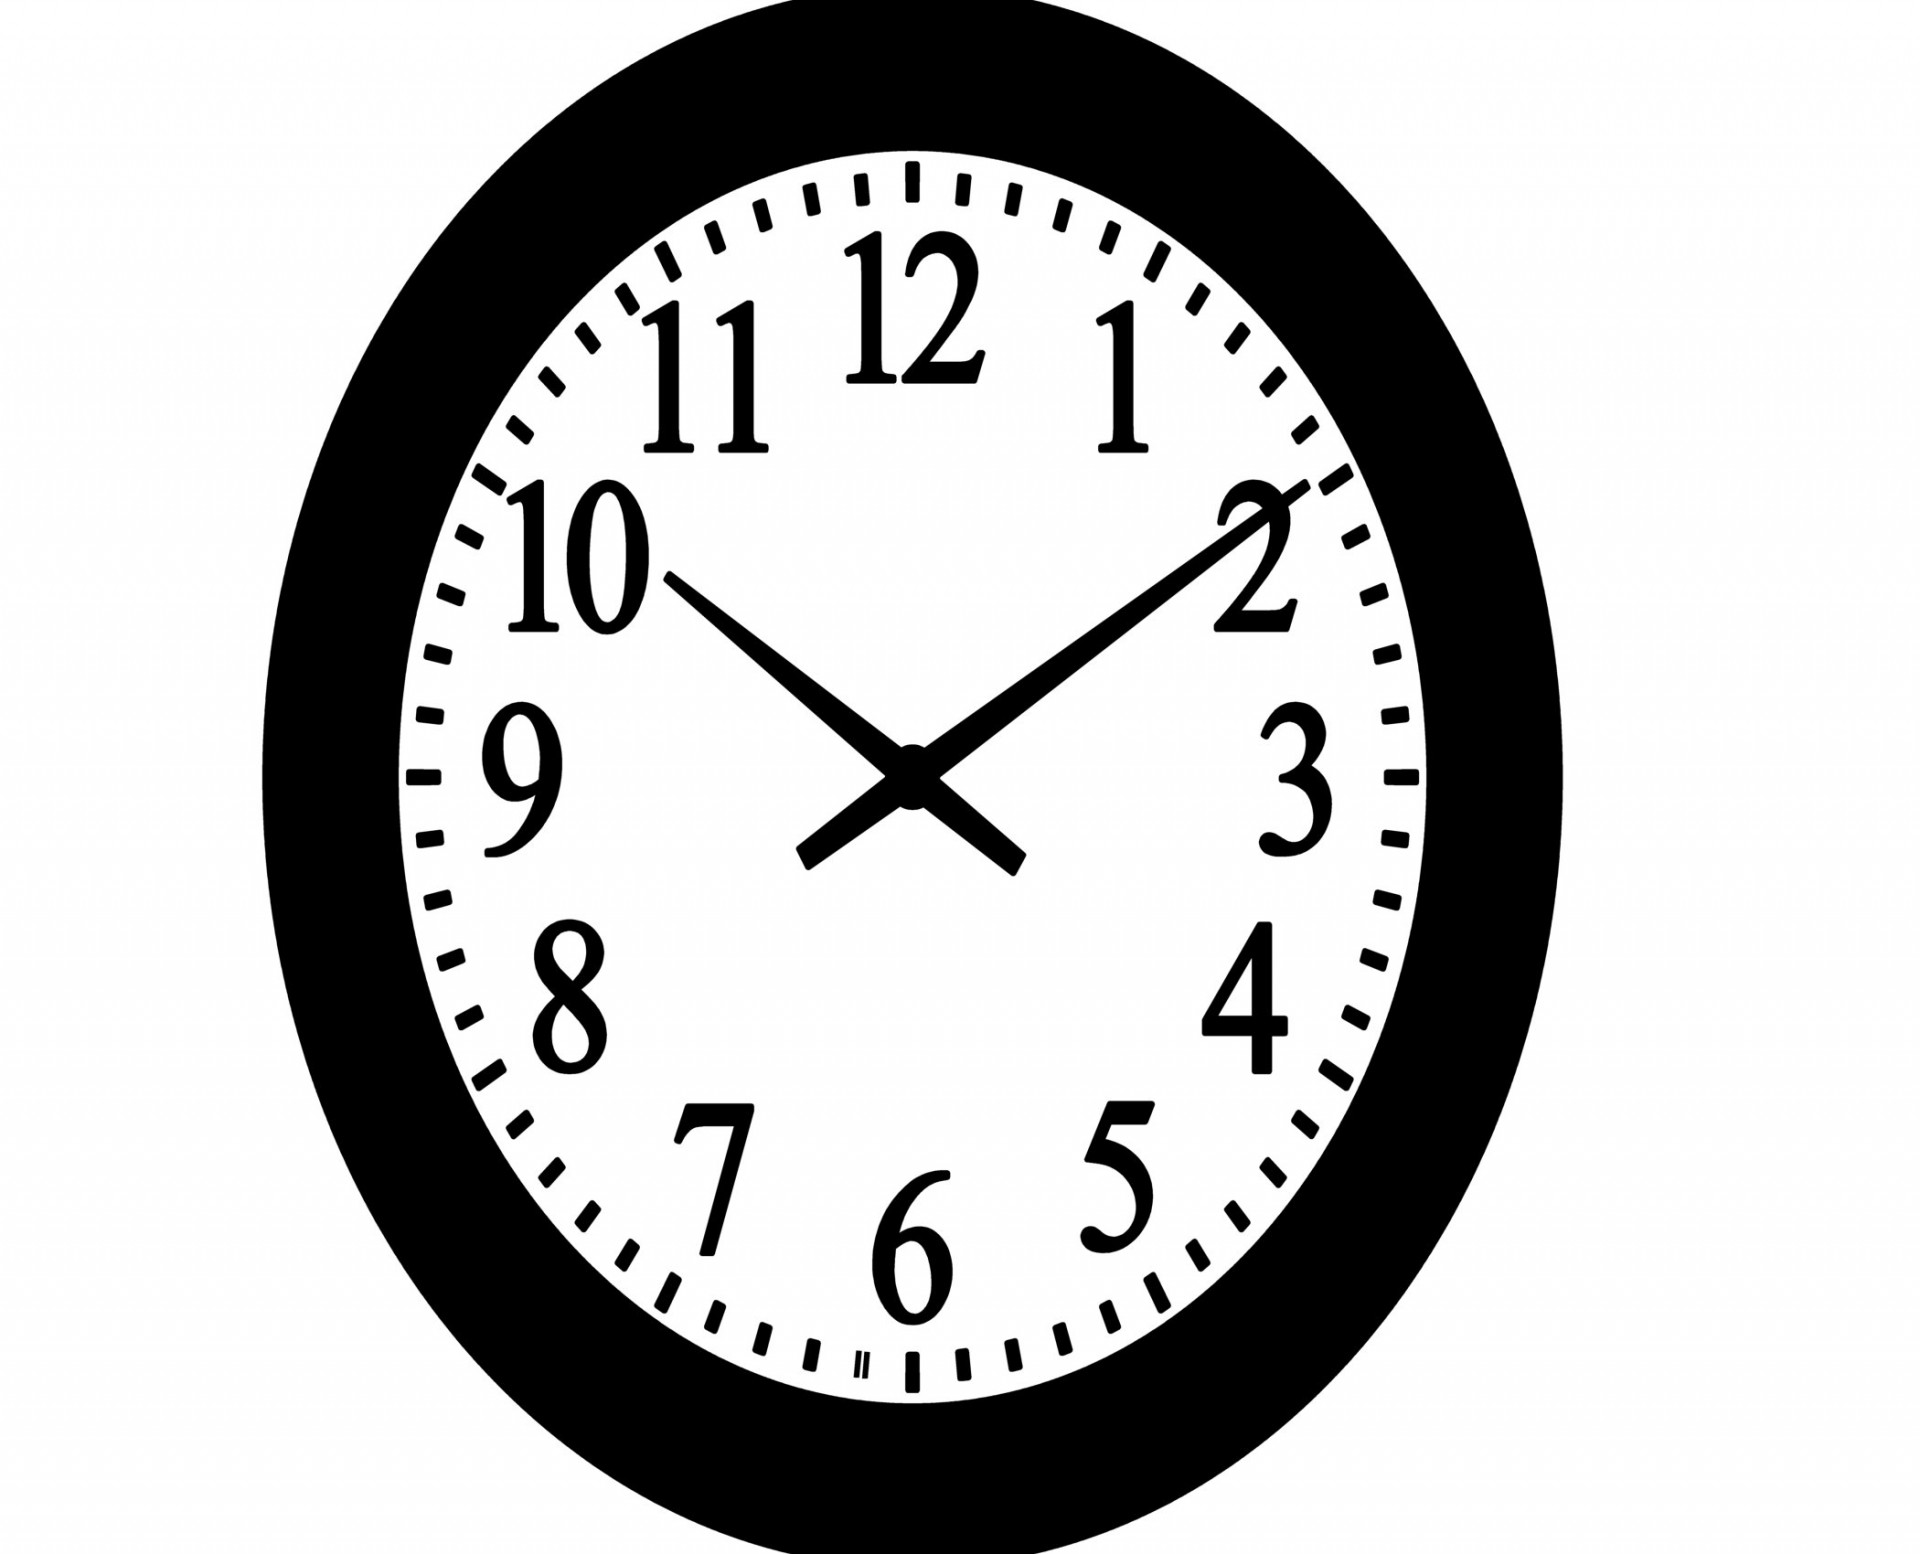 Wall clock clip art free stock photo public domain pictures.